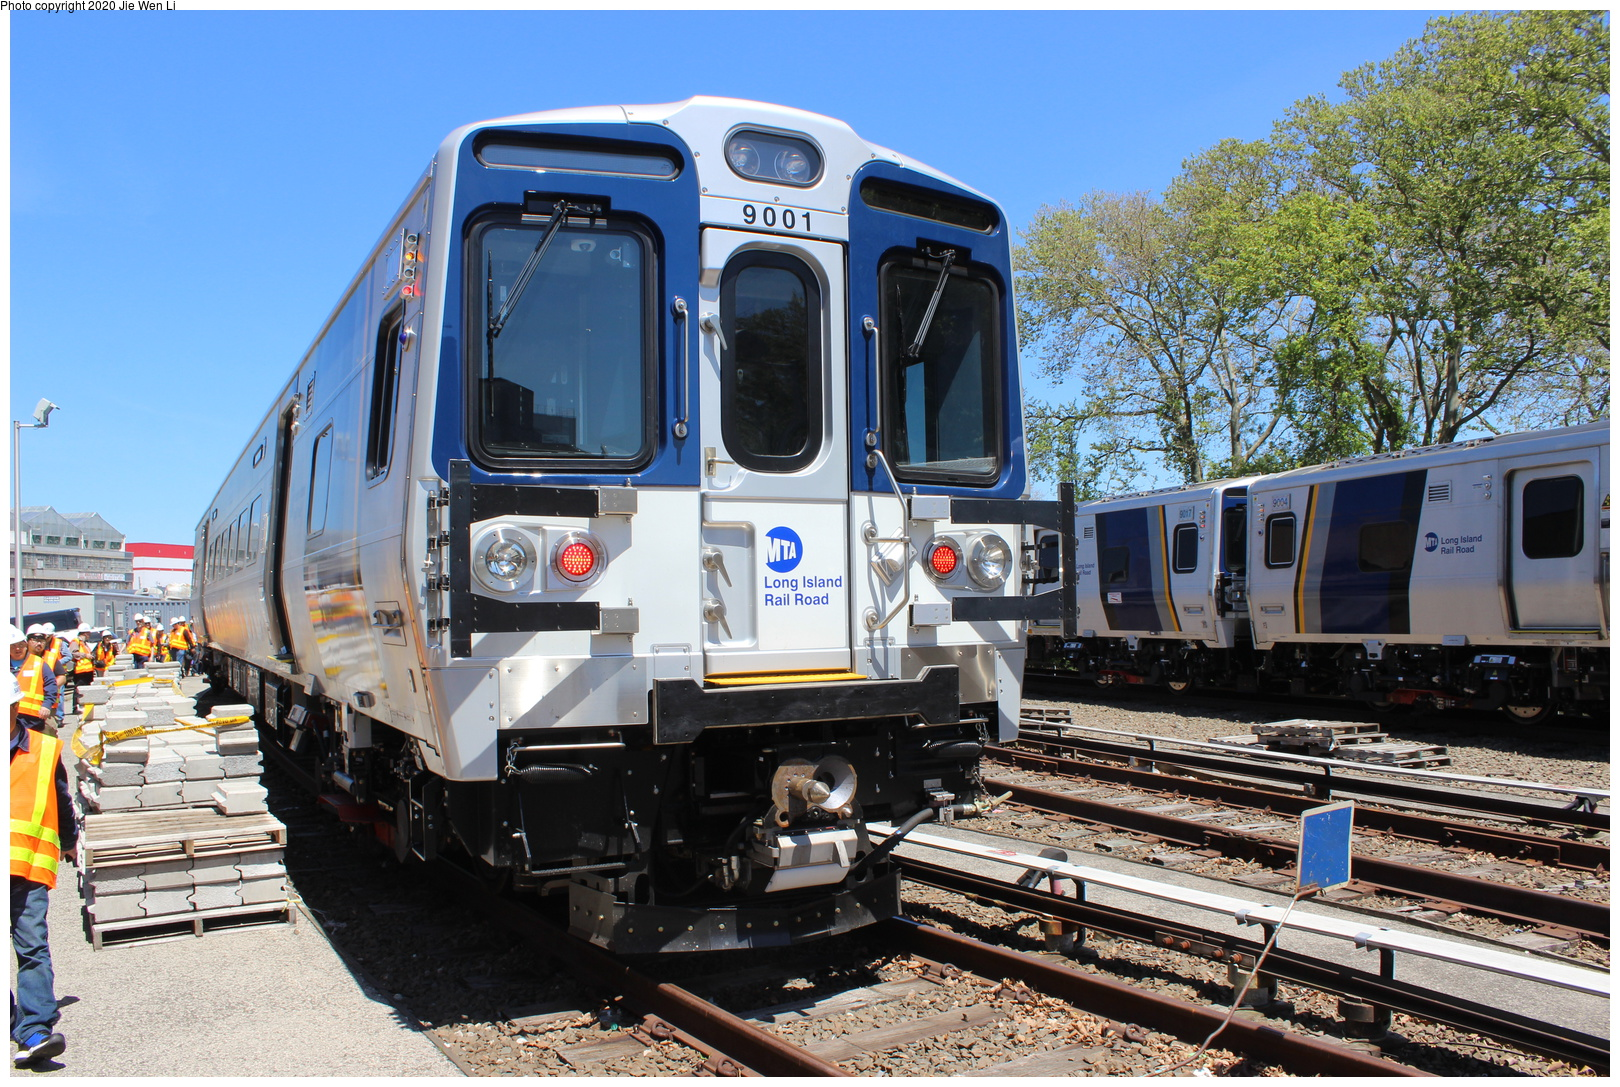 (267k, 1044x988)<br><b>Country:</b> United States<br><b>City:</b> New York<br><b>System:</b> New York City Transit<br><b>Line:</b> 9th Avenue El<br><b>Location:</b> 155th Street <br><b>Car:</b> Low-V 4215 <br><b>Photo by:</b> Joel Shanus<br><b>Viewed (this week/total):</b> 0 / 1667